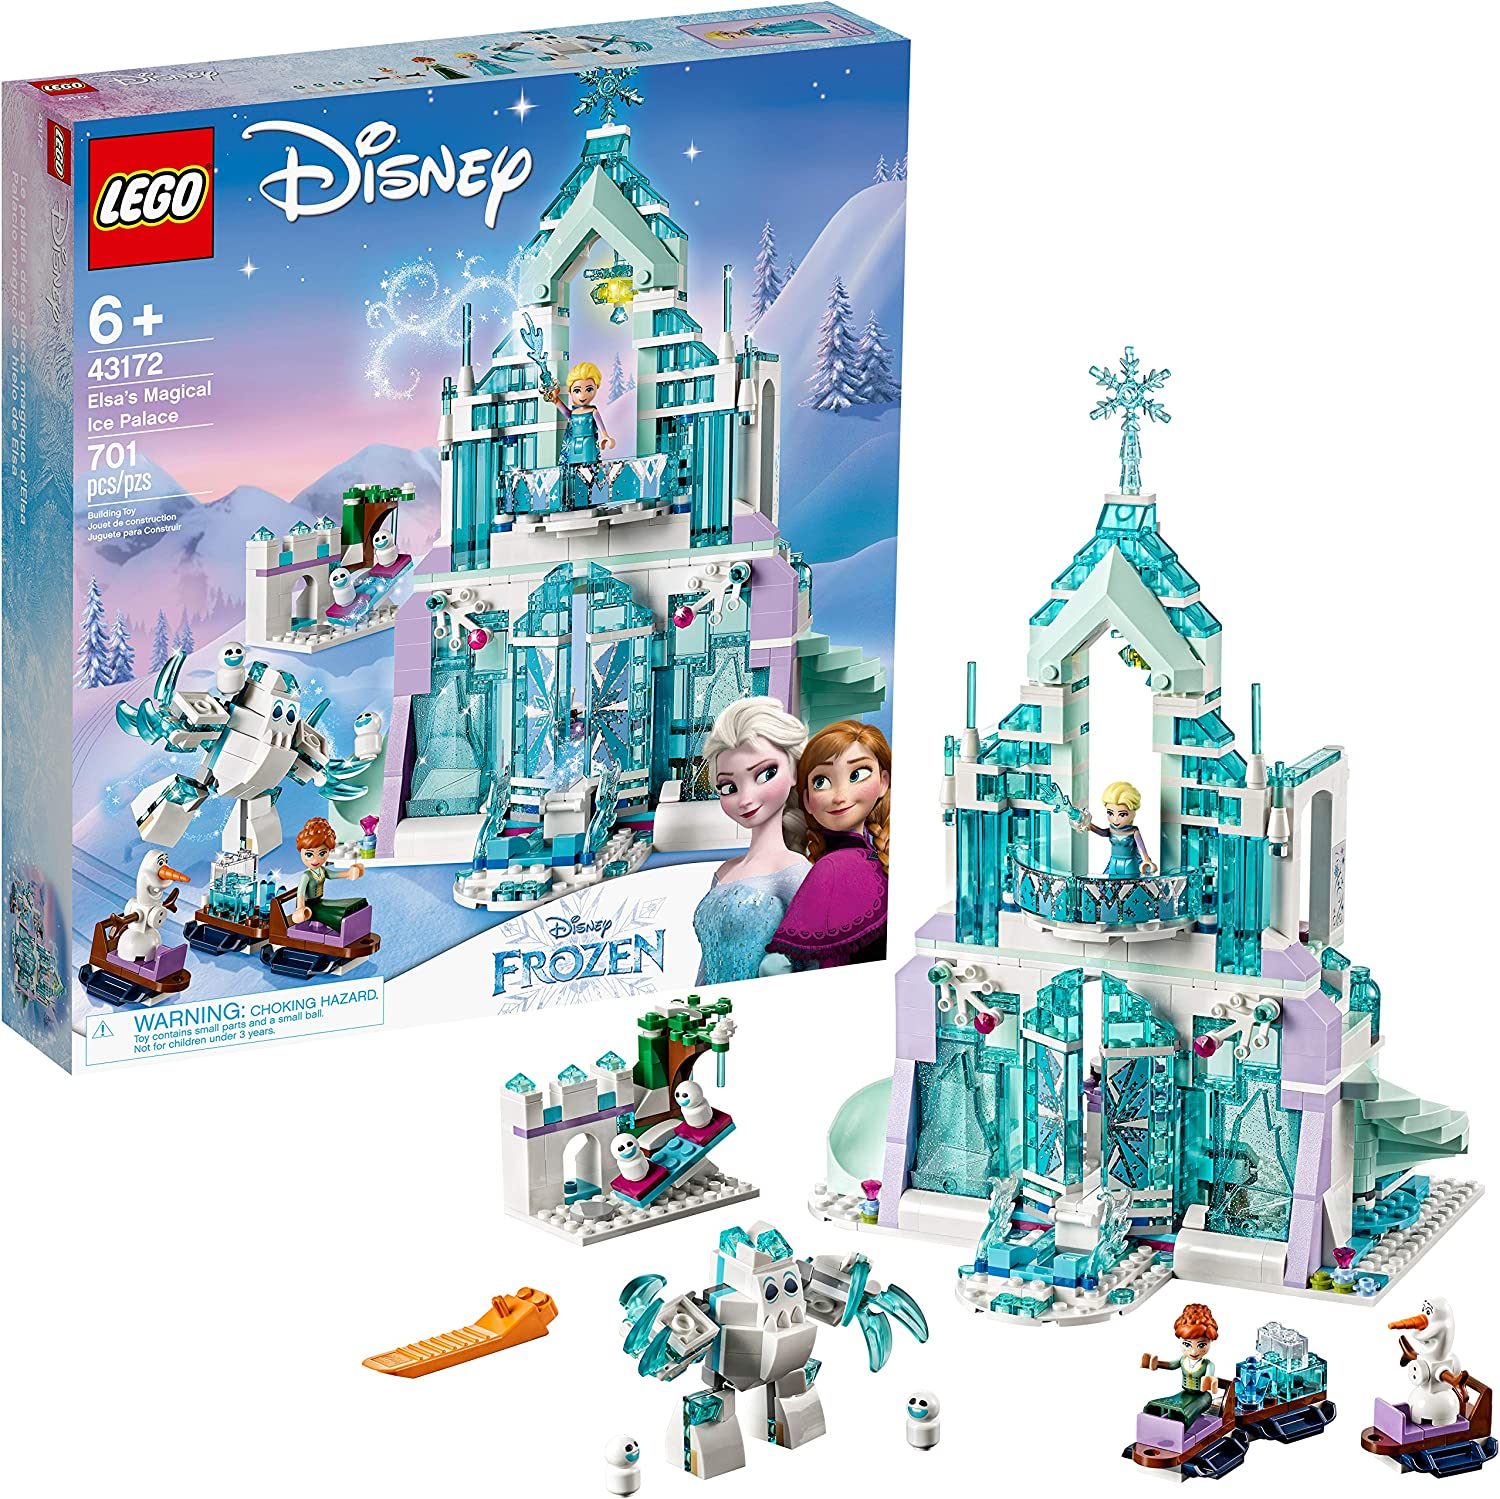 Olaf LEGO Disney Princess Elsas Magical Ice Palace 43172 Toy Castle Building Kit with Mini Dolls Castle Playset with Popular Frozen Characters Including Elsa 701 Pieces Anna and More